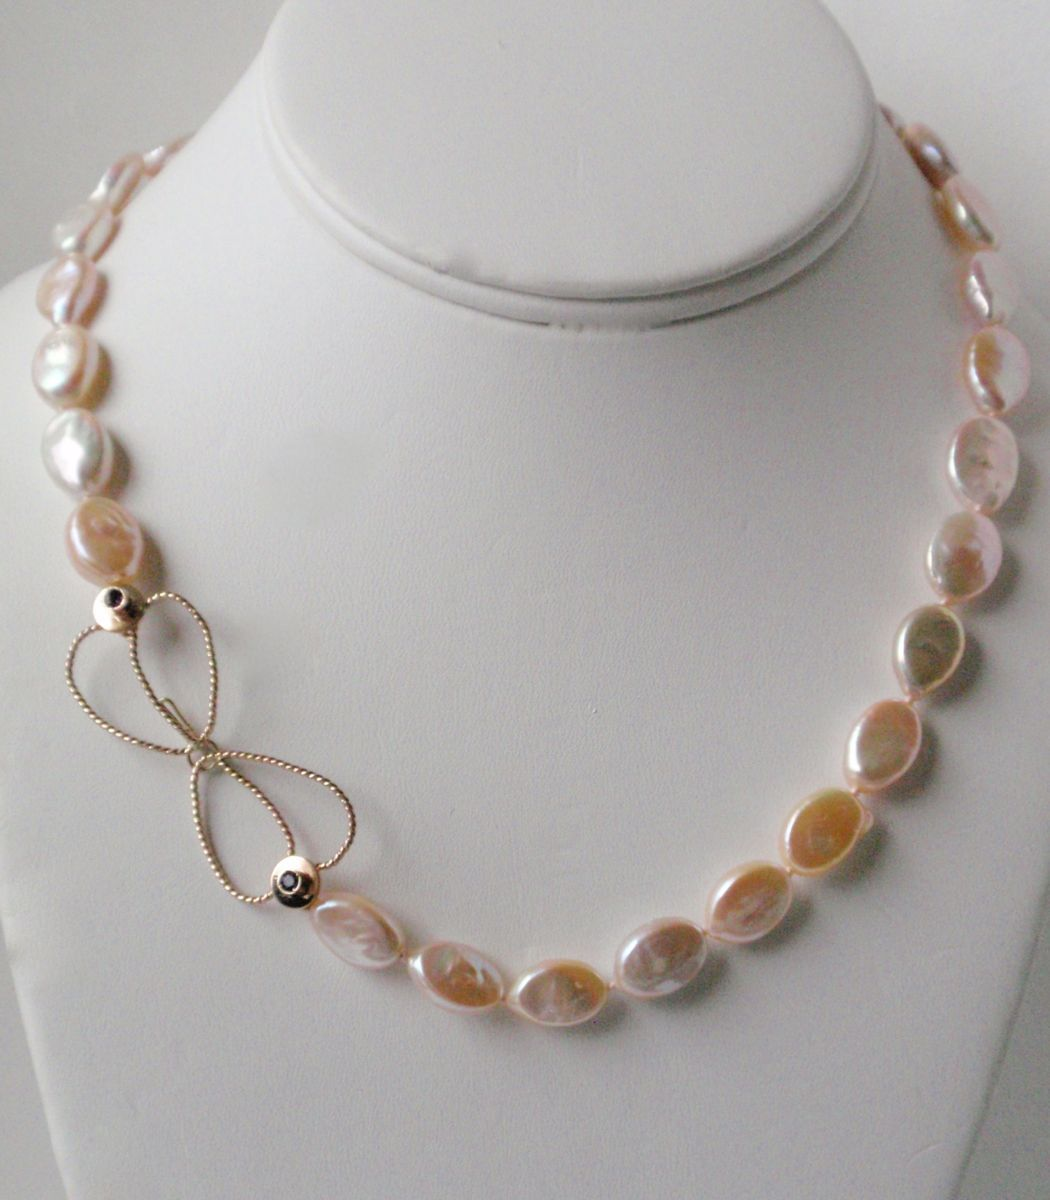 """404-MN Peach coins flat Pearls, Amethysts, 14Kt Gold, GF, 18"""" long (large view)"""